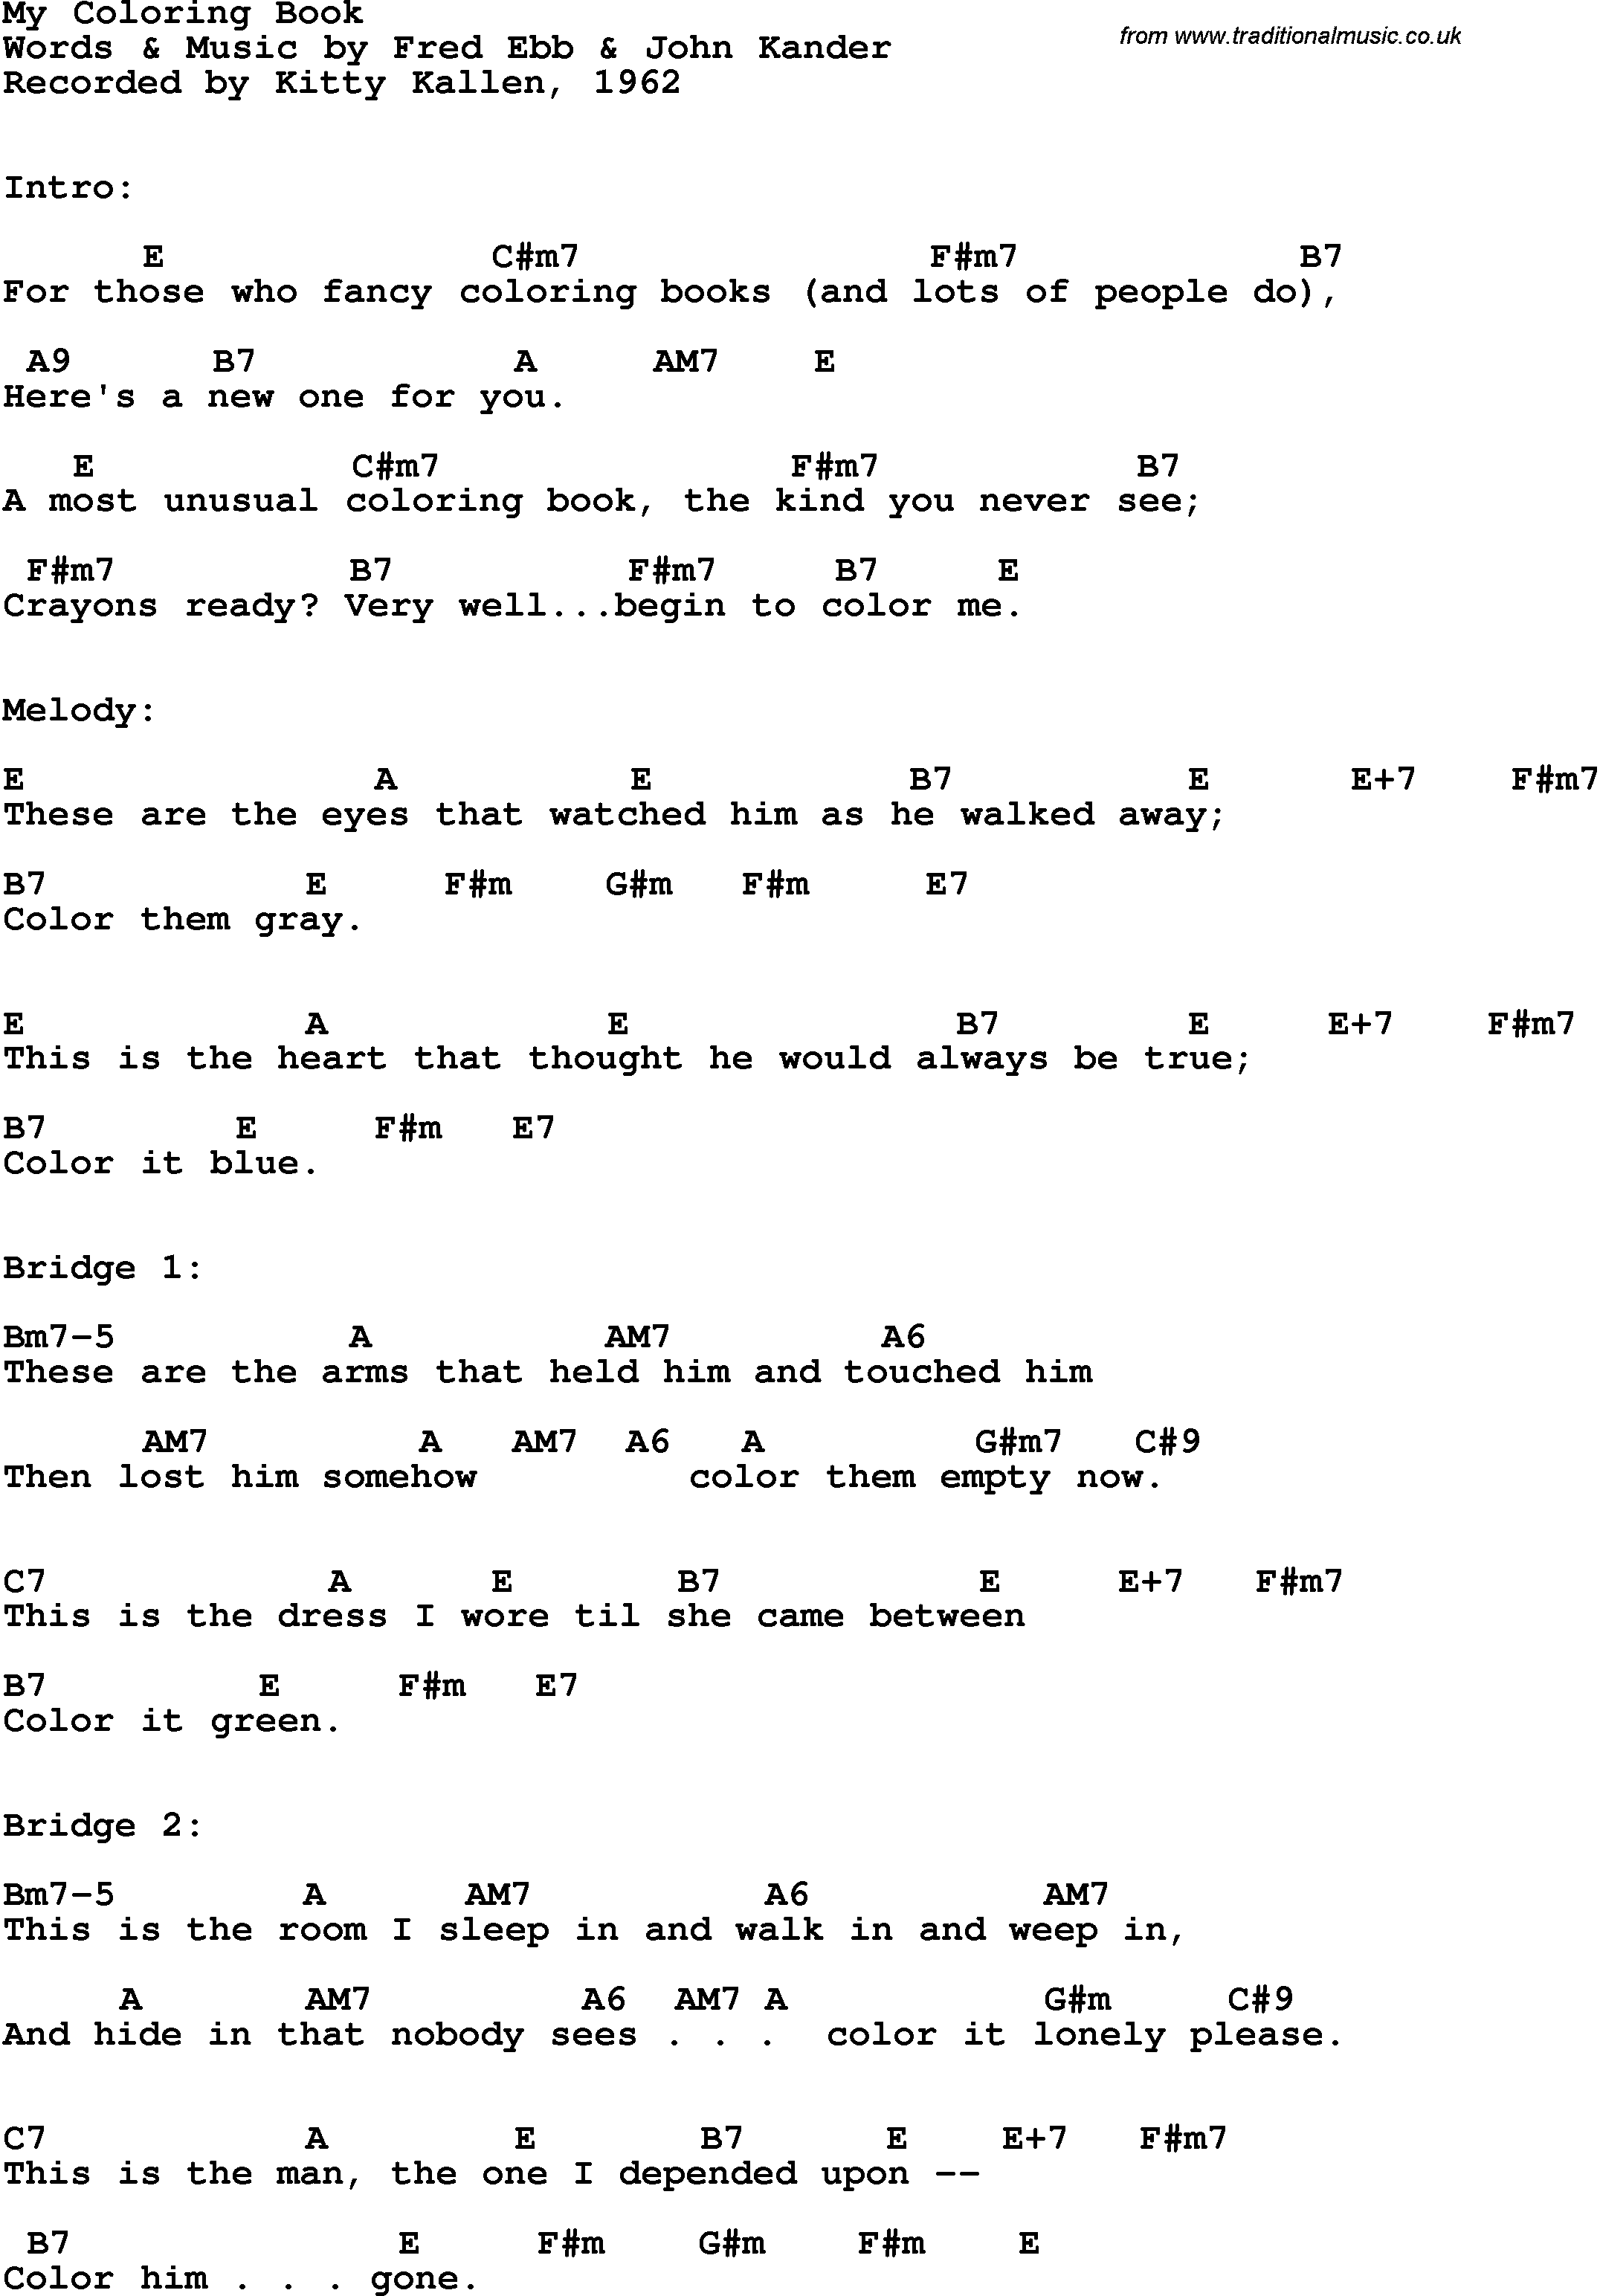 Song lyrics with guitar chords for My Coloring Book - Kitty Kallen, 1962